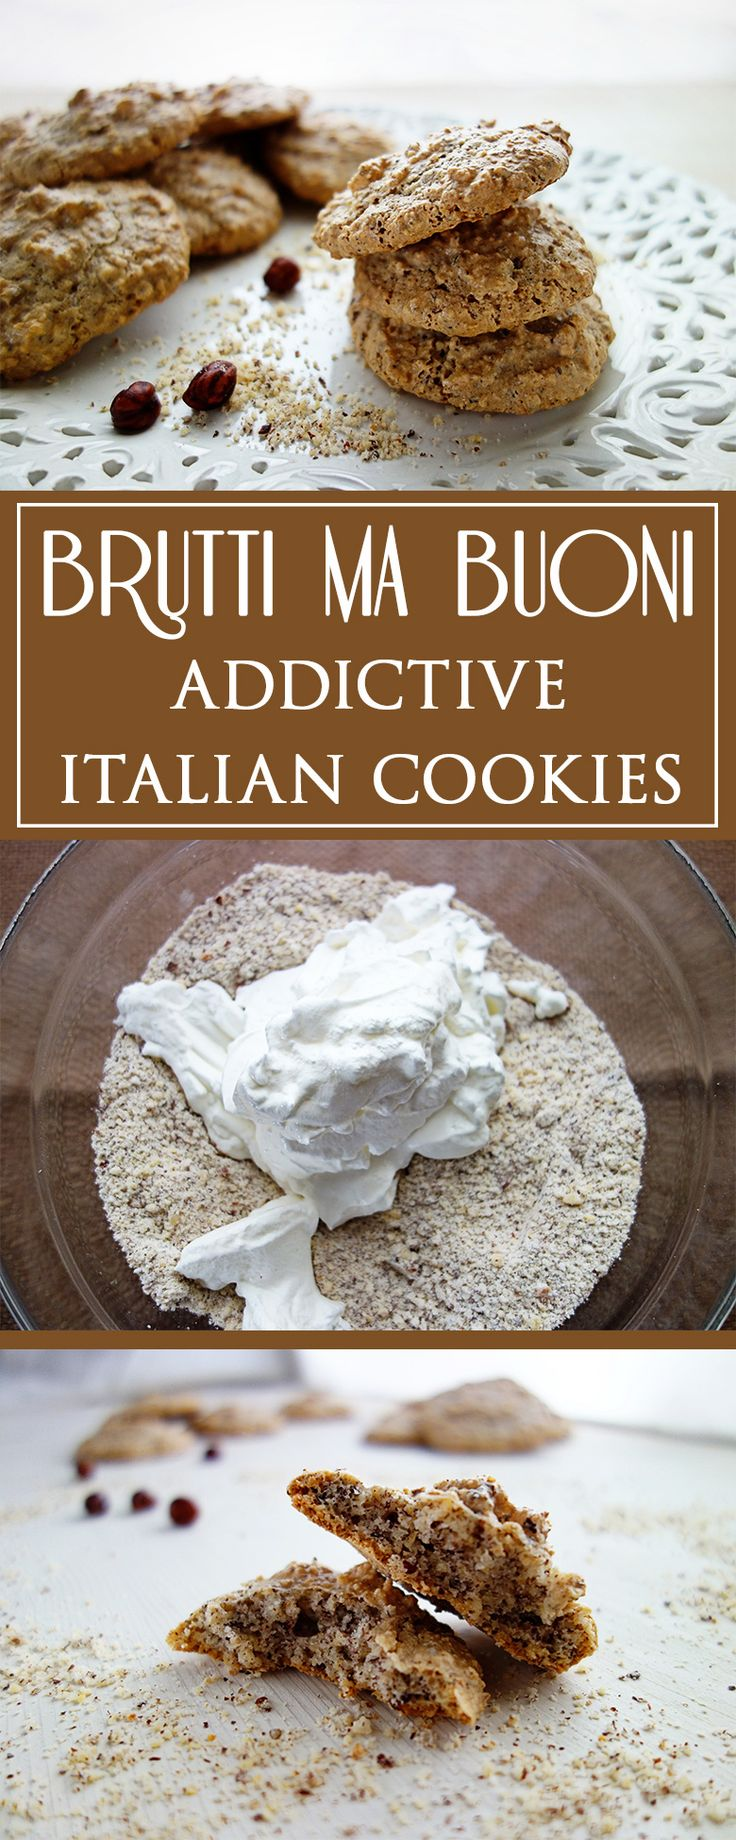 Brutti ma Buoni - addictive italian cookies - here you can find the simple, incredibly delicious recipe for this little sin made in Italy! 🍪🇮🇹❤️ | cucina-con-amore.de